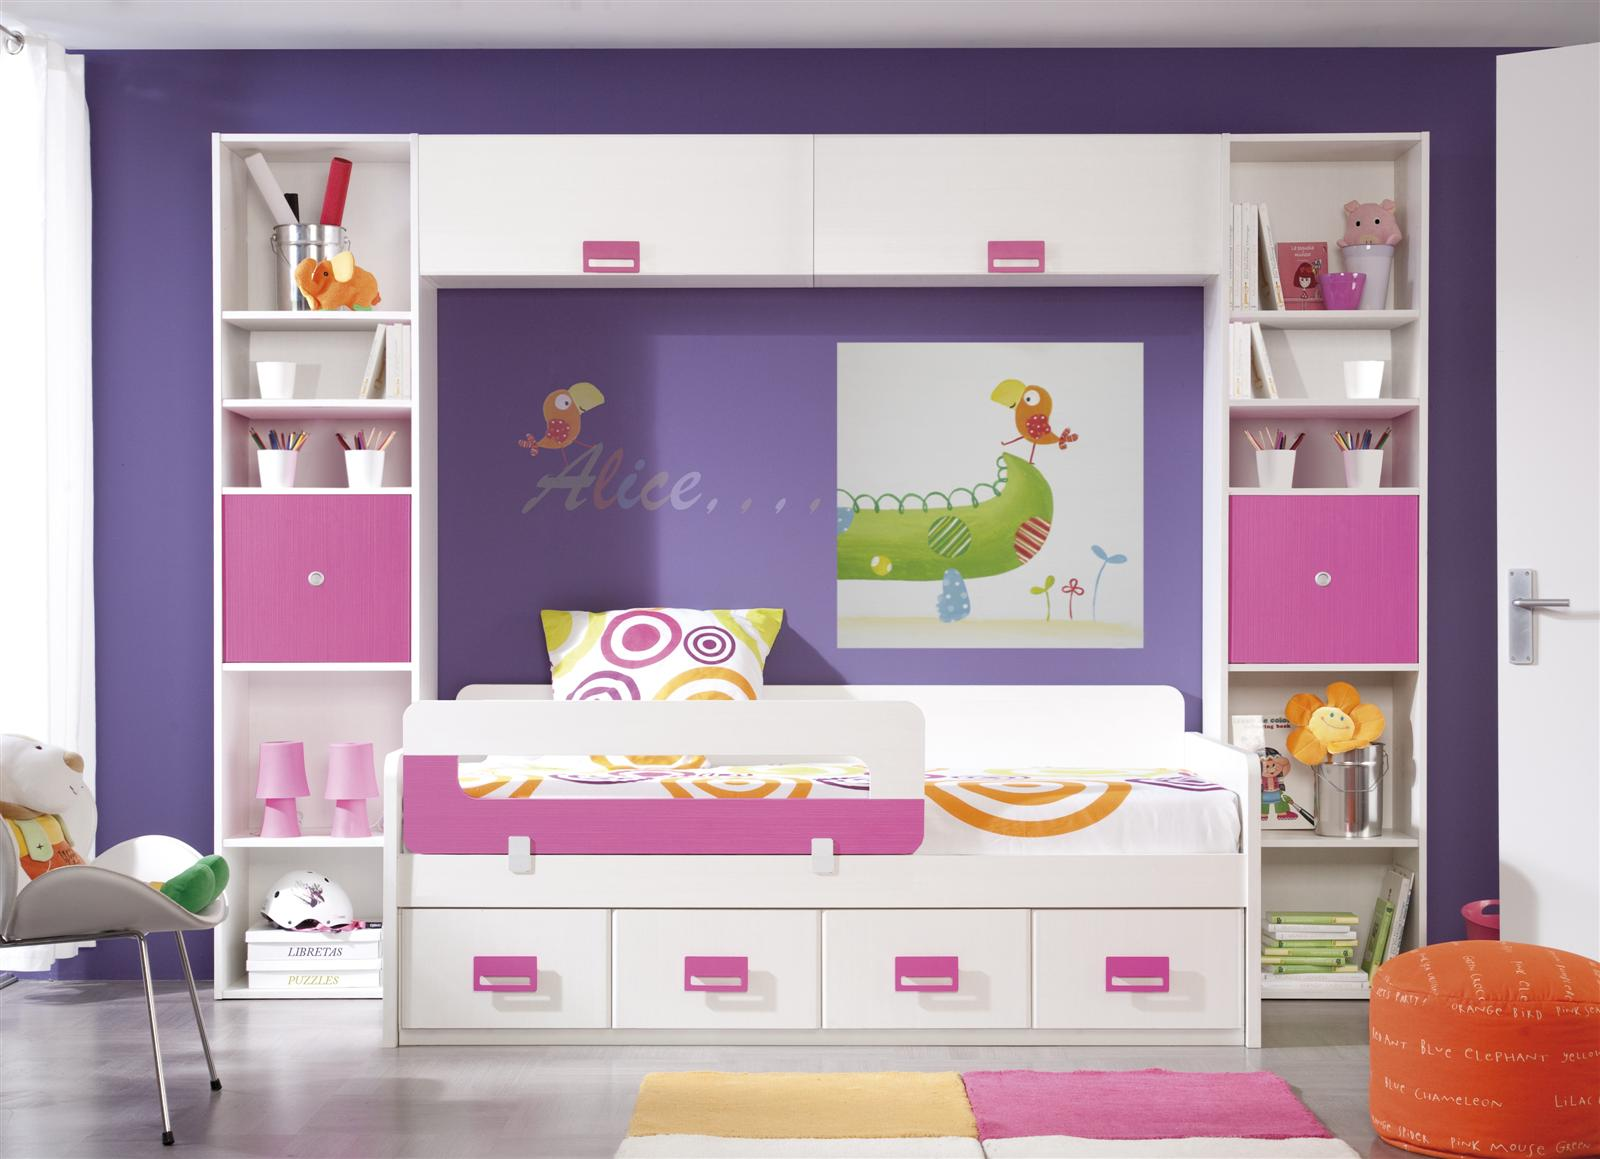 Psicolog a del color para decorar habitaciones infantiles for Ideas para decorar dormitorios infantiles